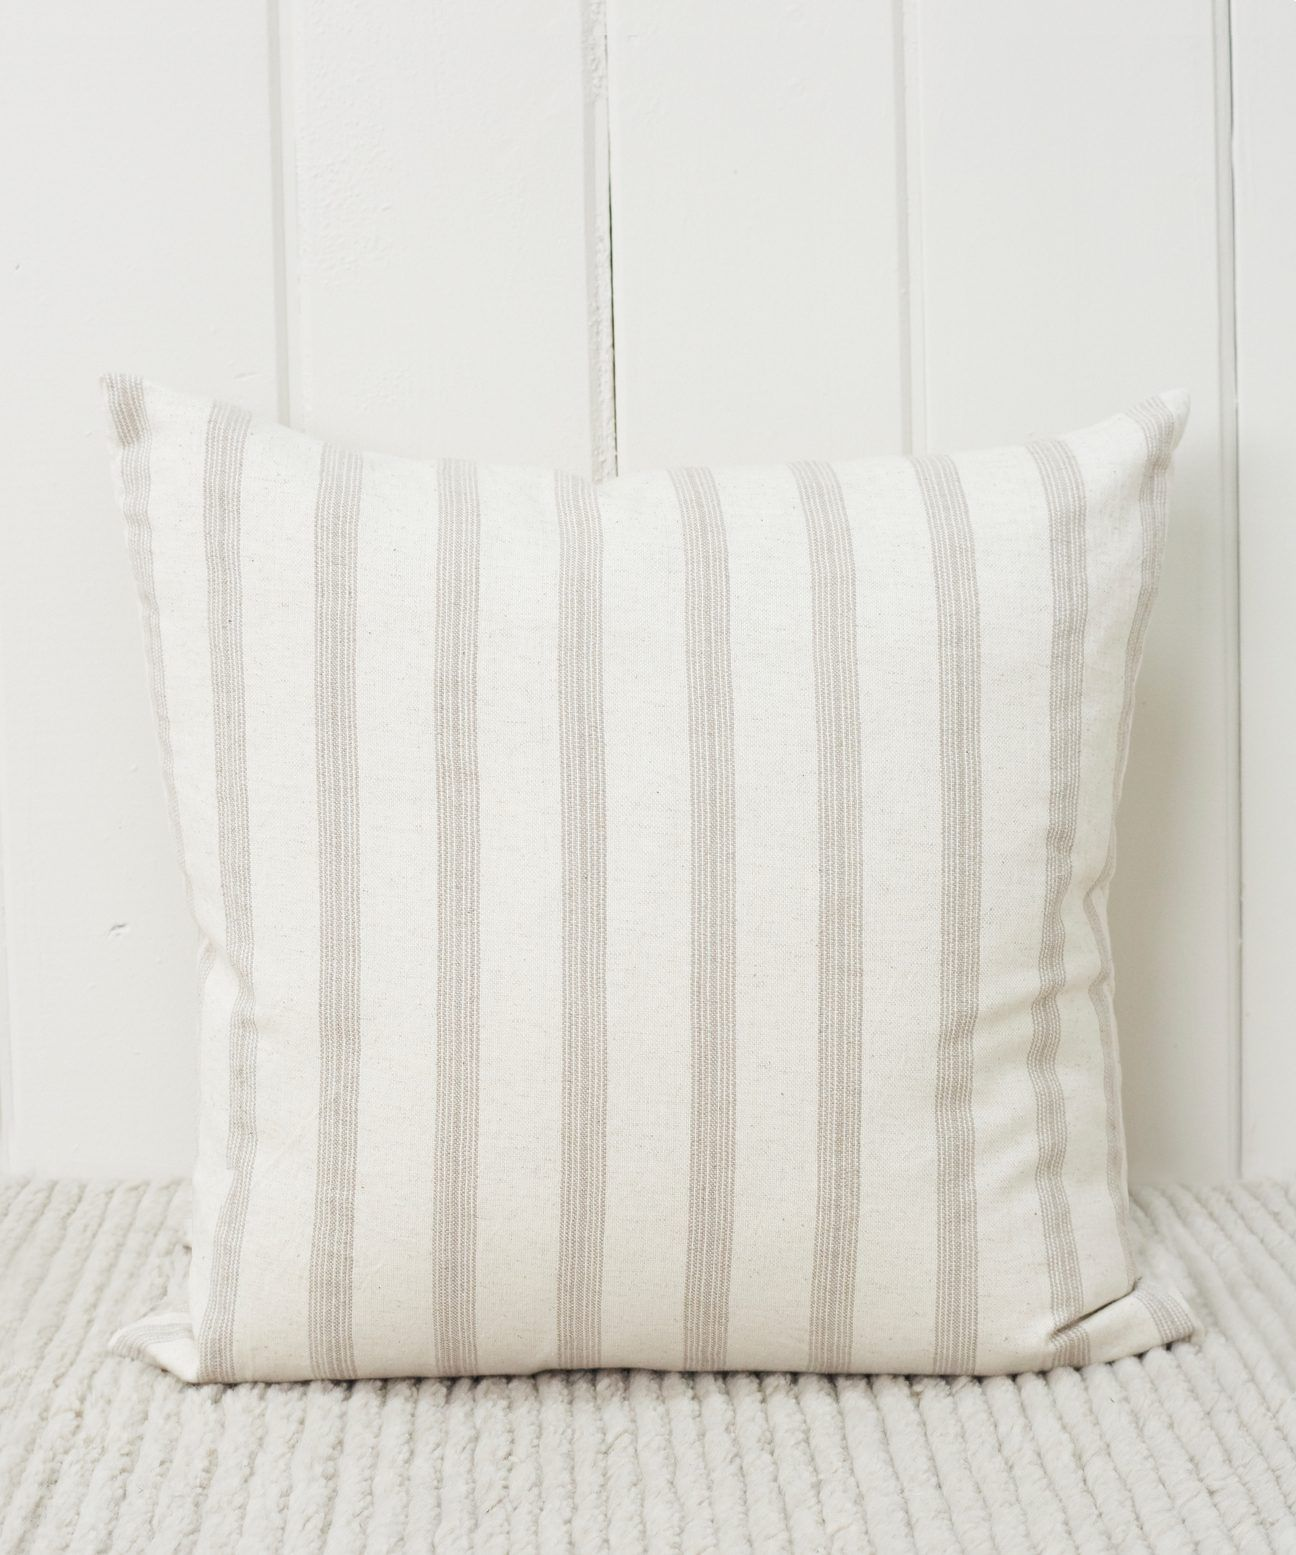 Ojai Pillow Grey Stripe Jenni Kayne Jenni Kayne Ojai Pillow Grey Stripe Jenni Kayne Pillows Grey Stripes